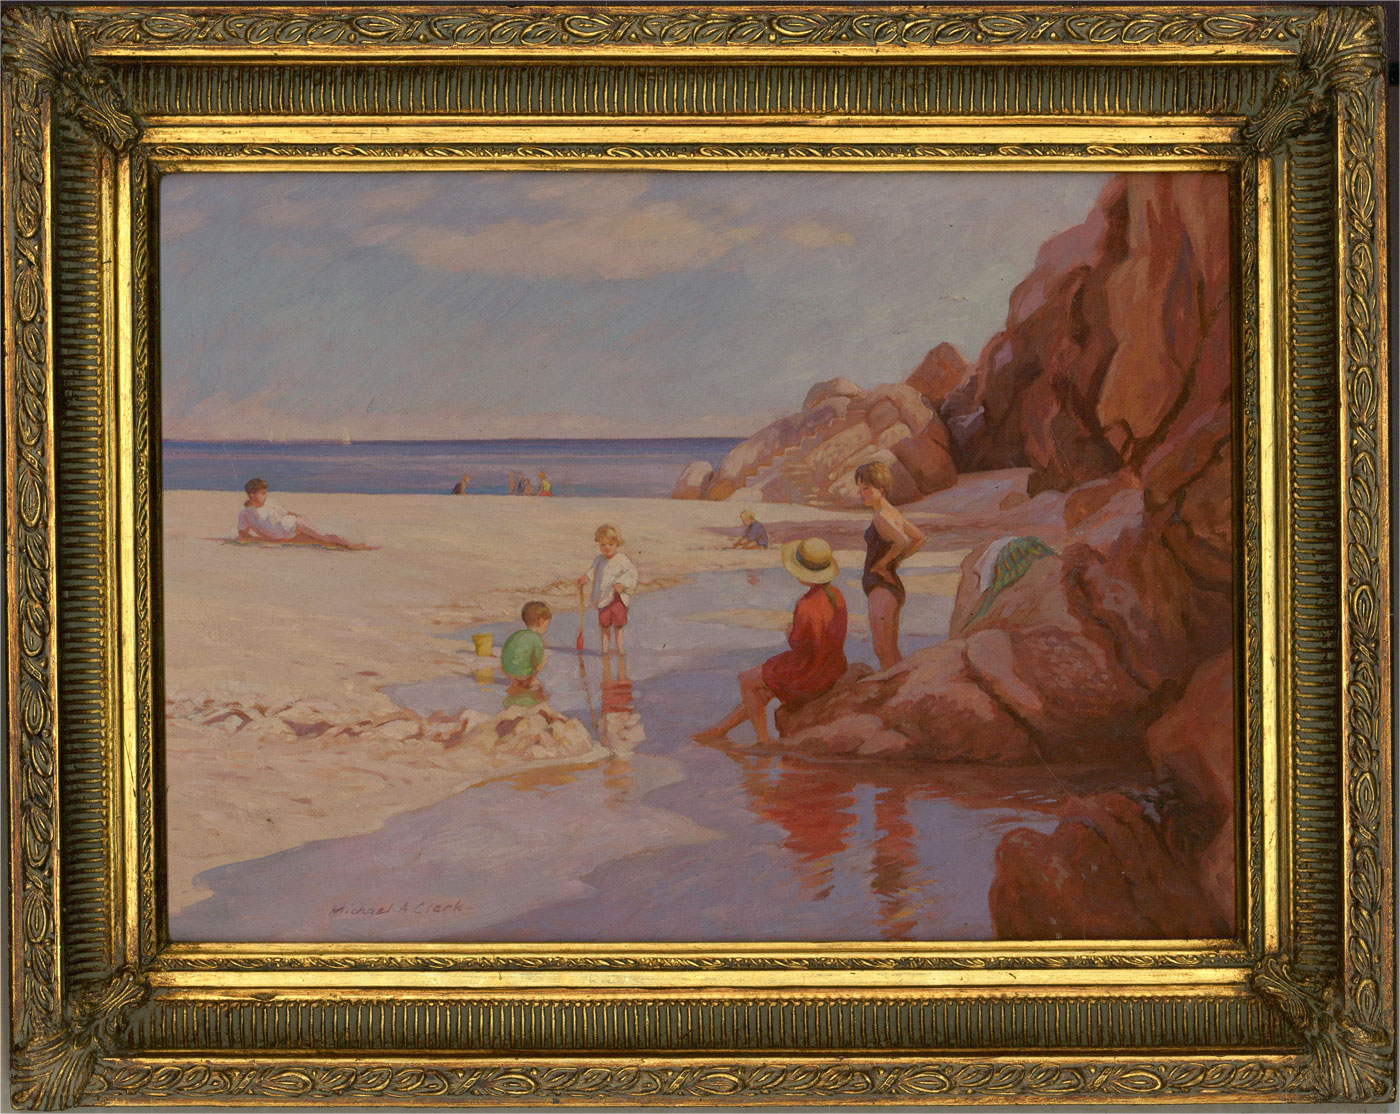 Michael A. Clark - 20th Century Oil, At the Seaside